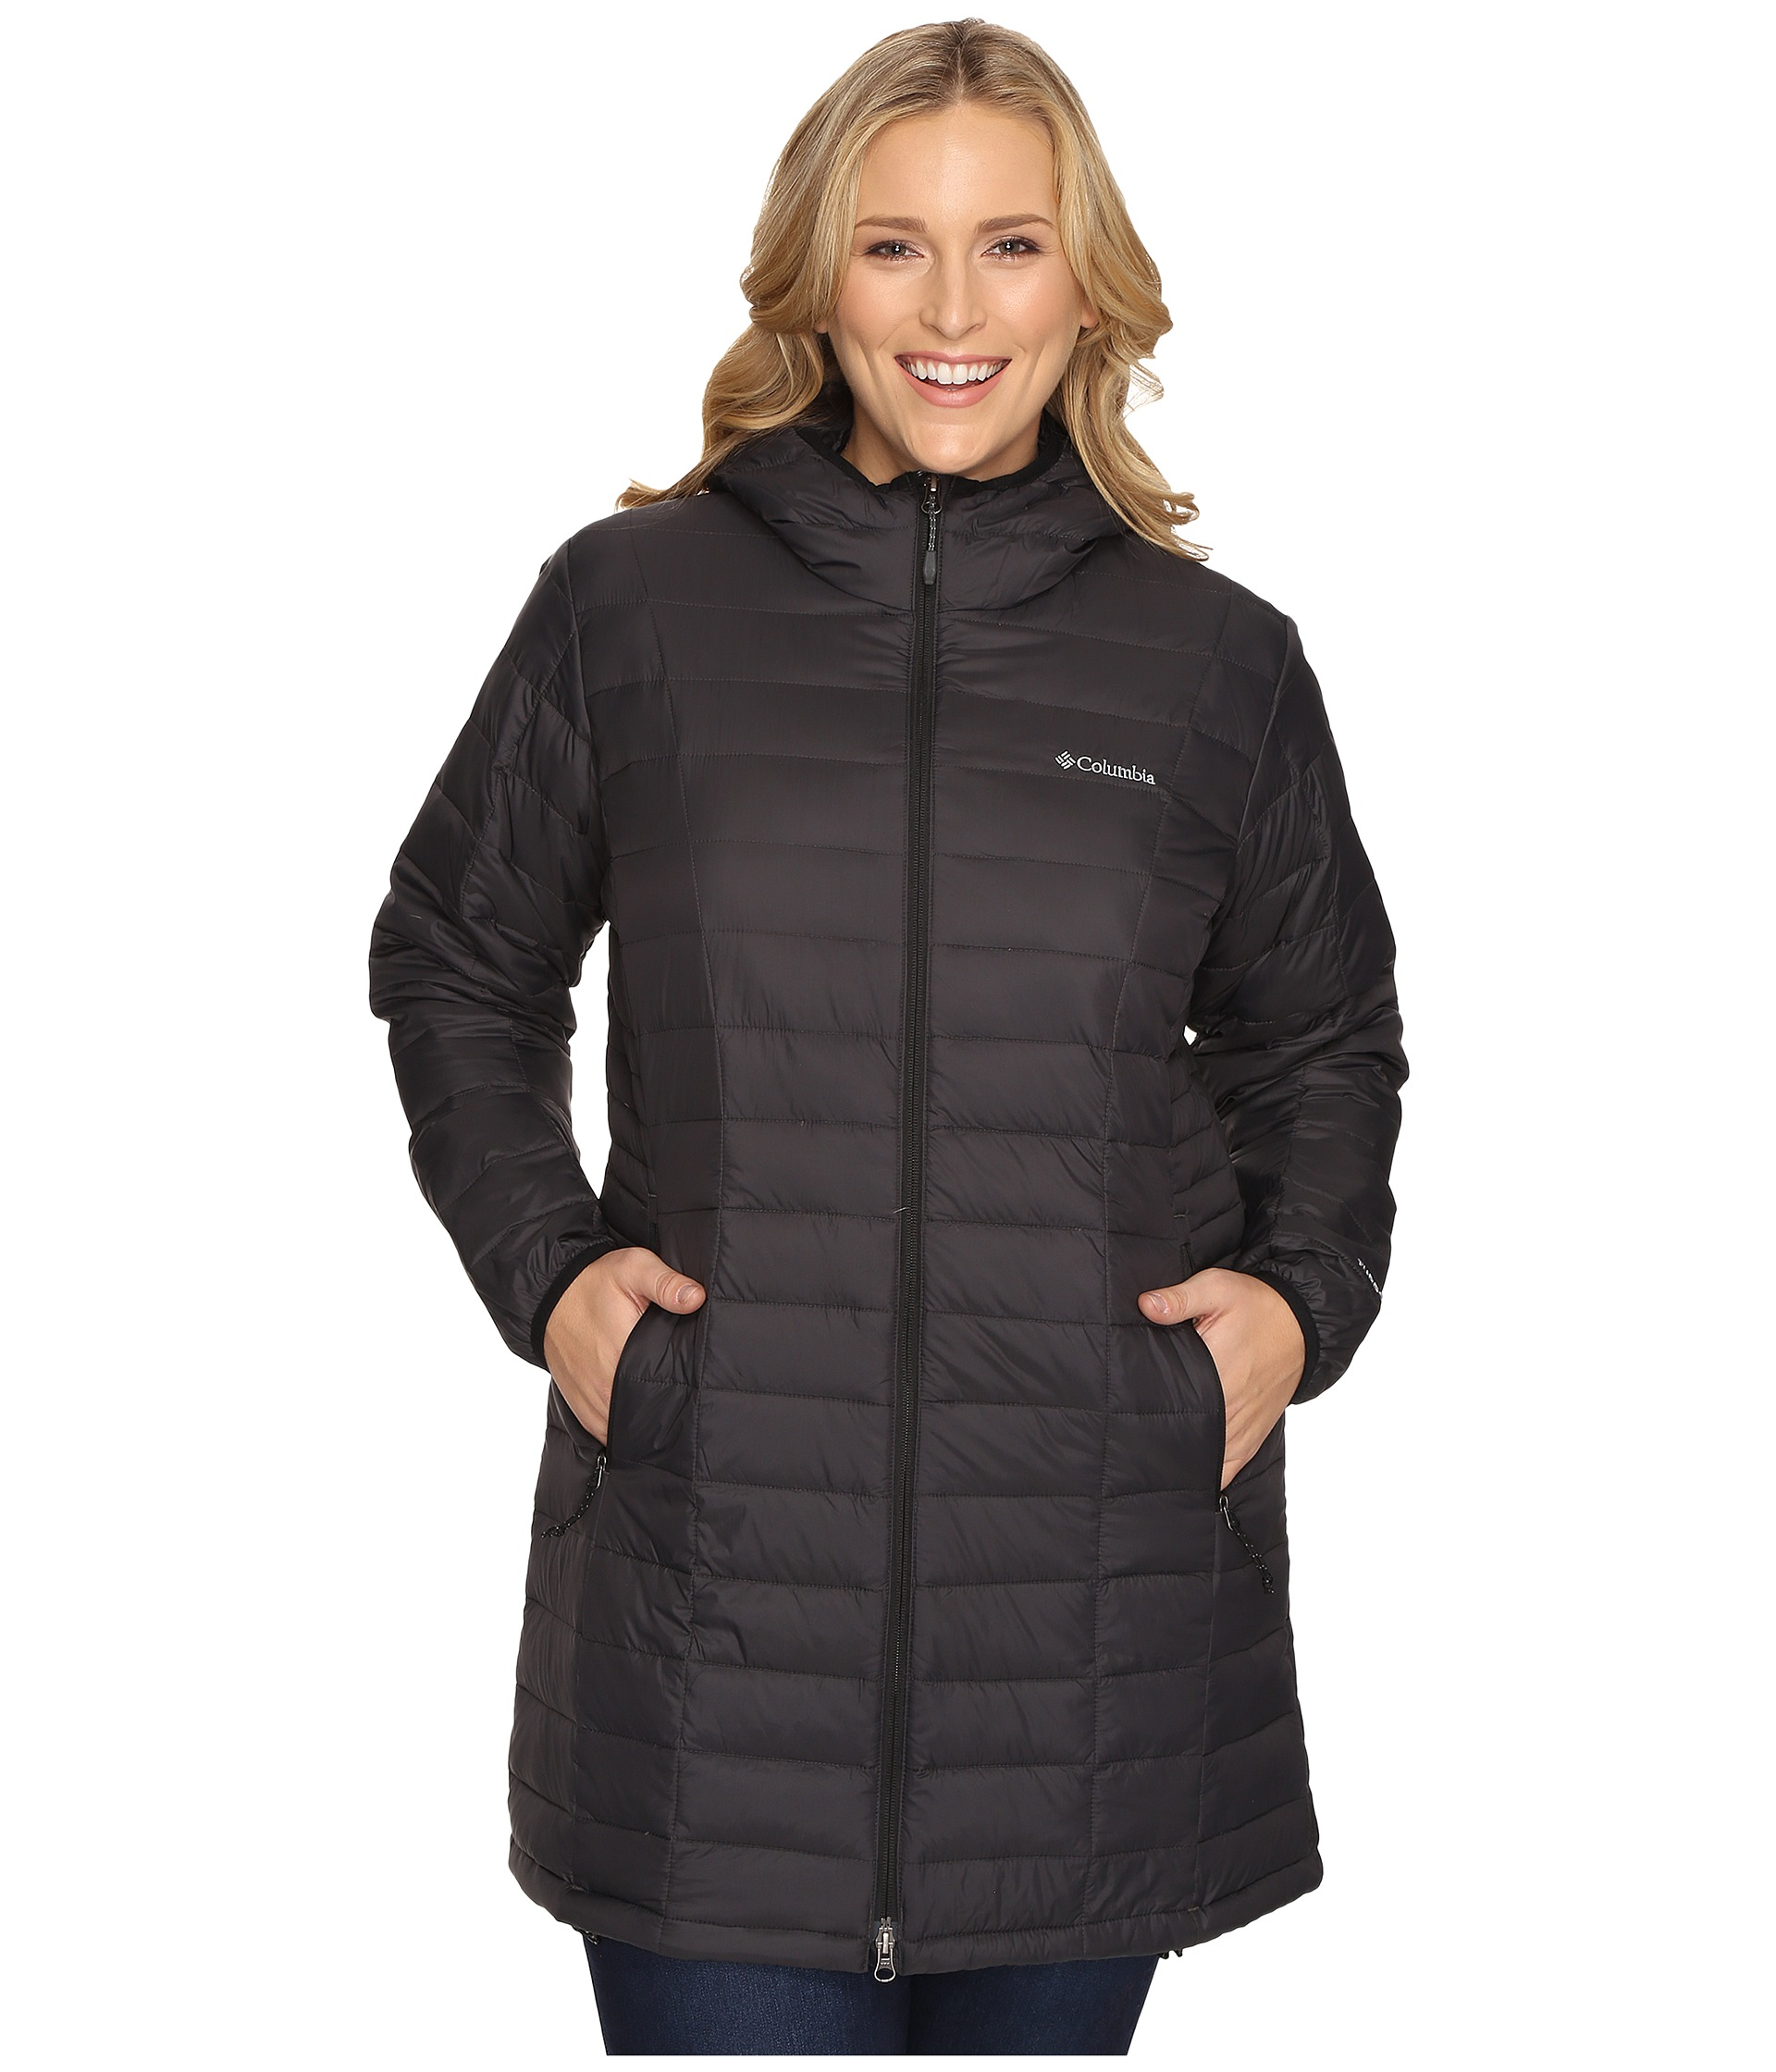 Womens Plus Size Jackets